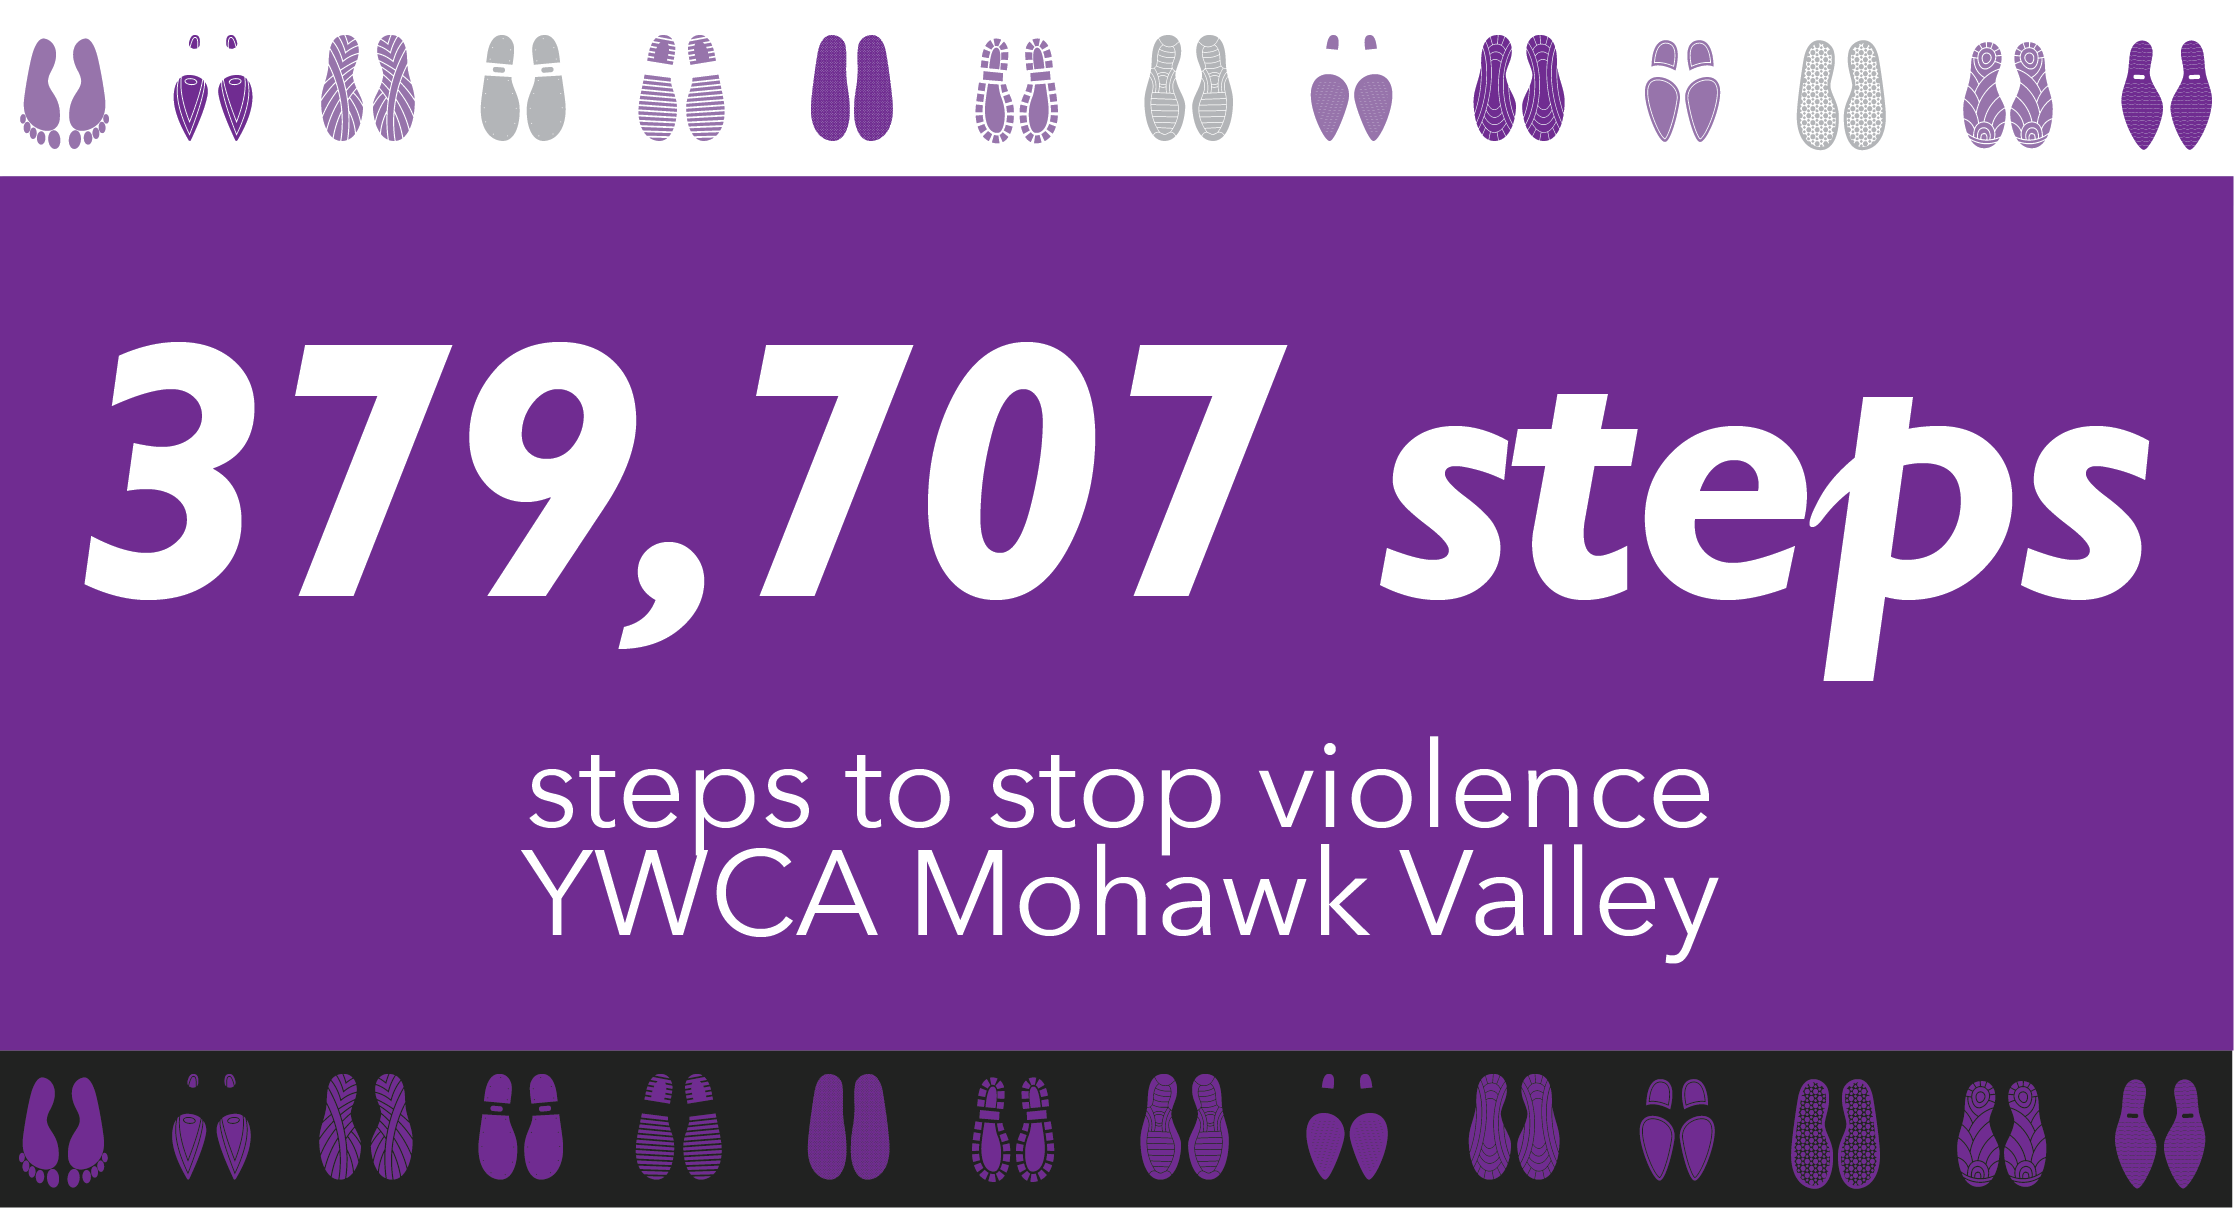 379,707 steps | steps to stop violence, YWCA Mohawk Valley